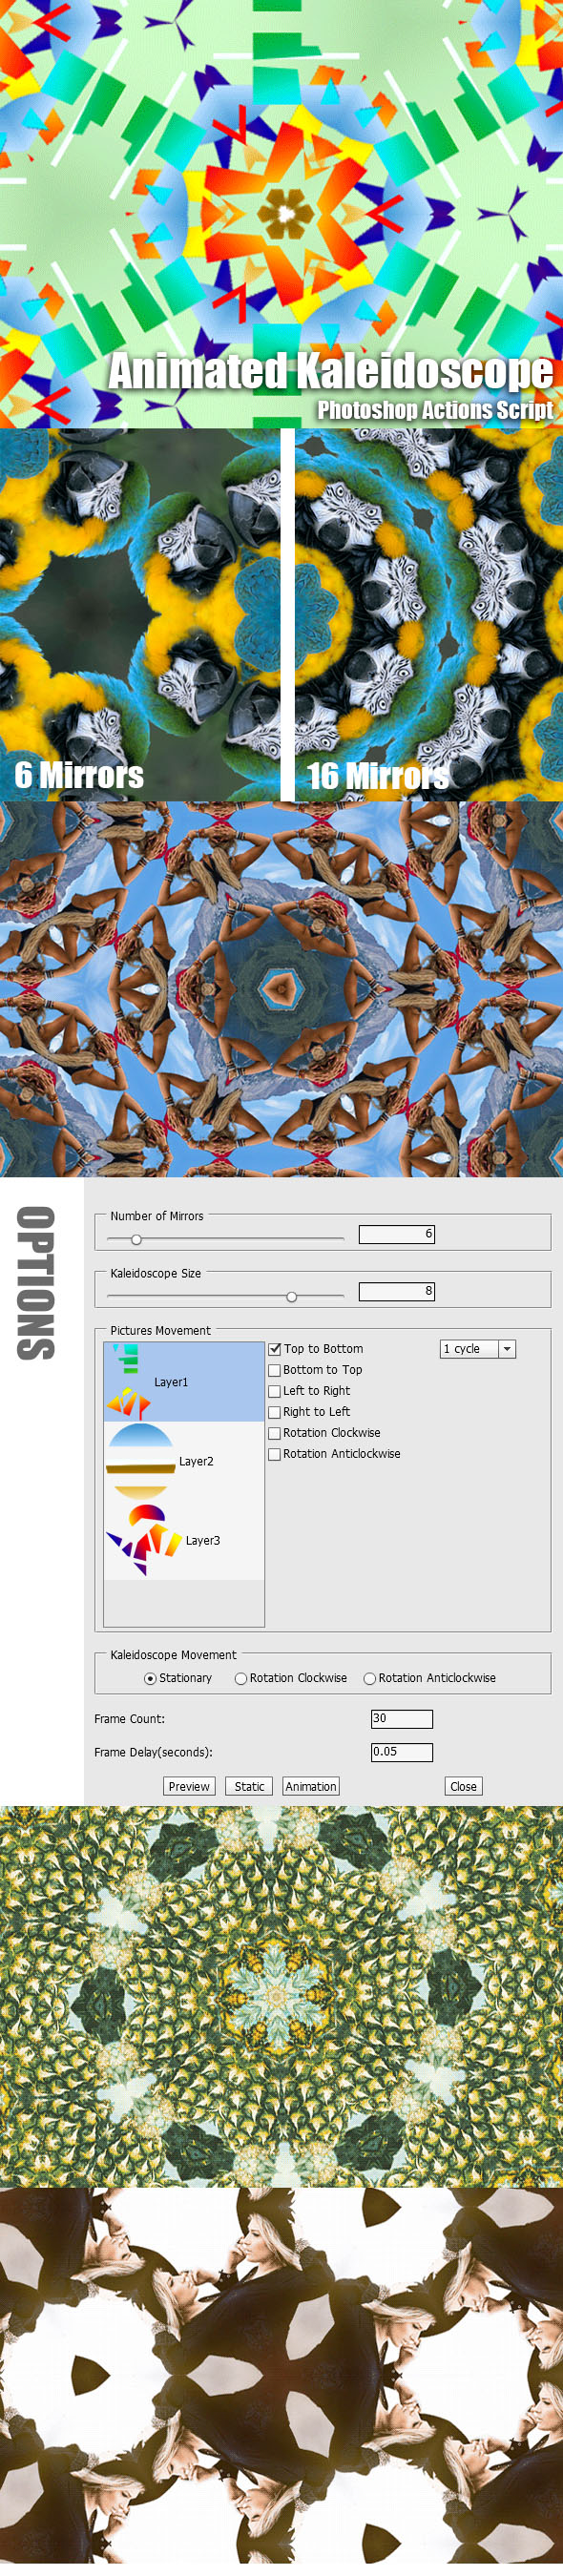 Animated Kaleidoscope Photoshop Add-on - Actions Photoshop